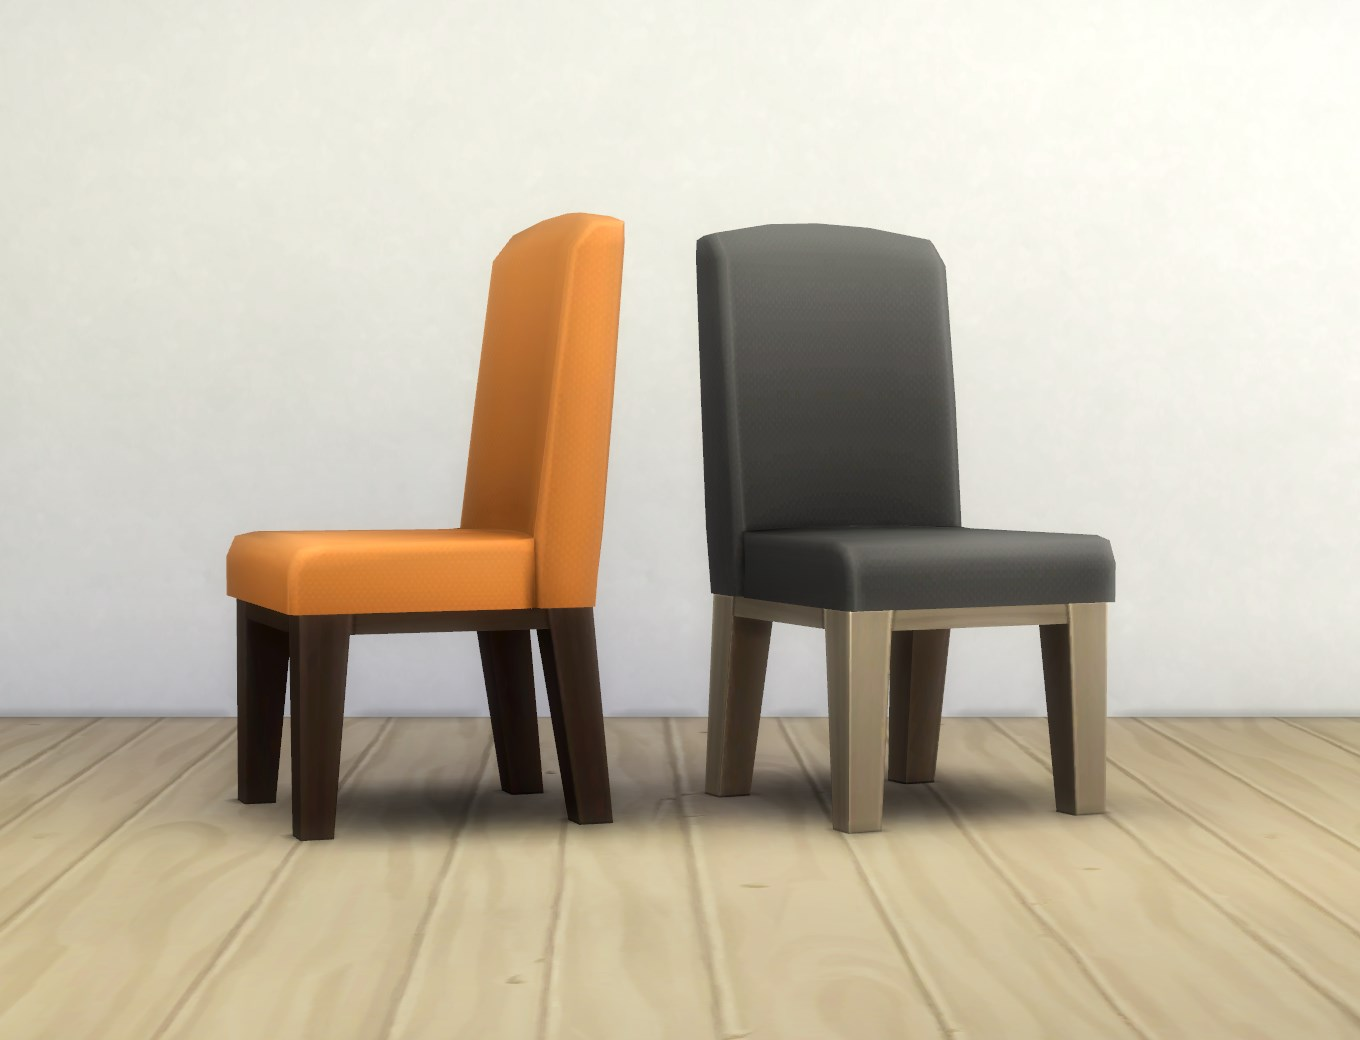 Mod The Sims Lux Chair – Comfy Dining Chairs